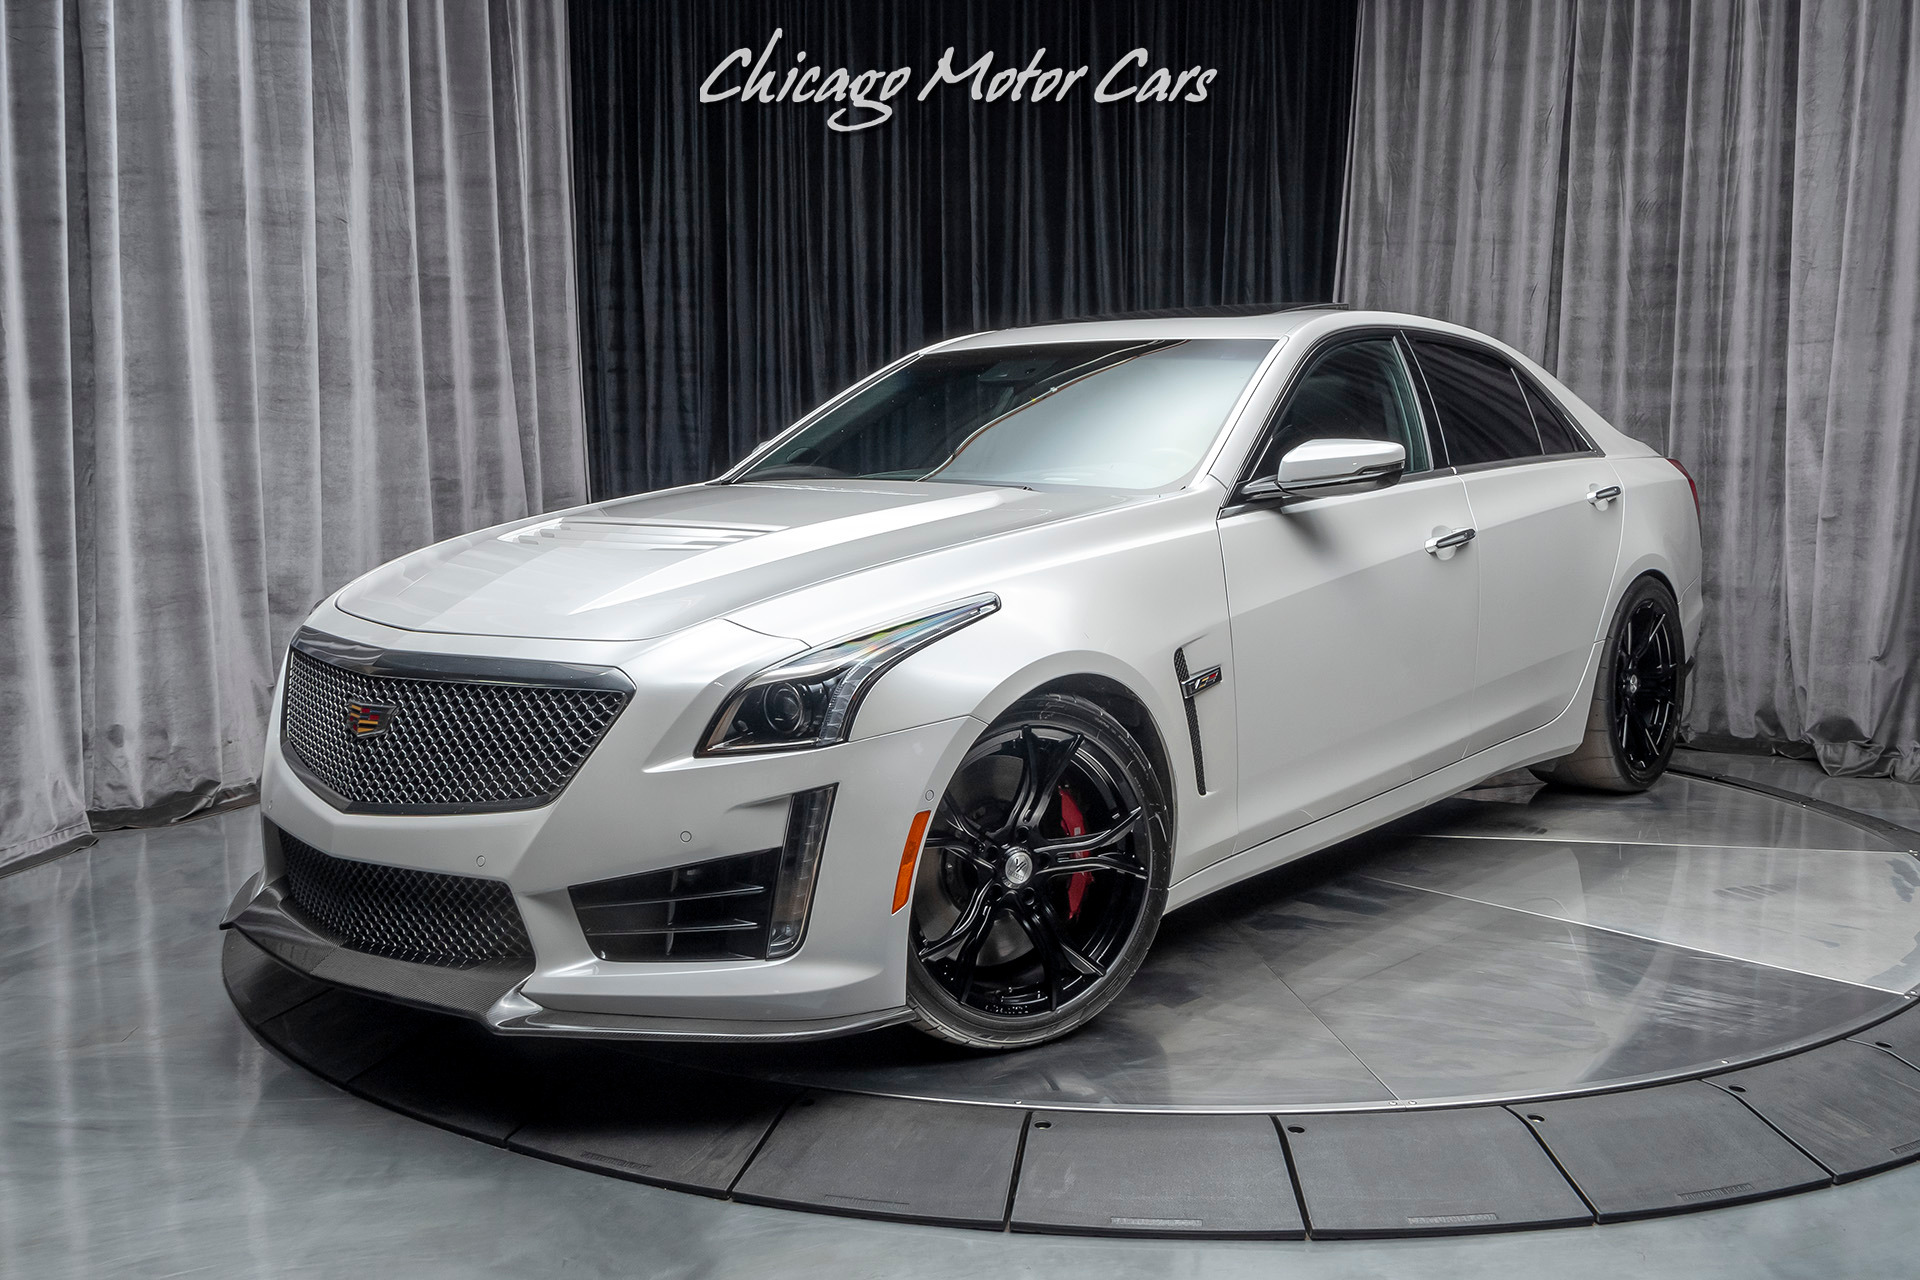 Used 2018 Cadillac Cts V Sedan 881 Rwhp 25k In Upgrades Recaro Racing Seats Luxury Package For Sale Special Pricing Chicago Motor Cars Stock 16869